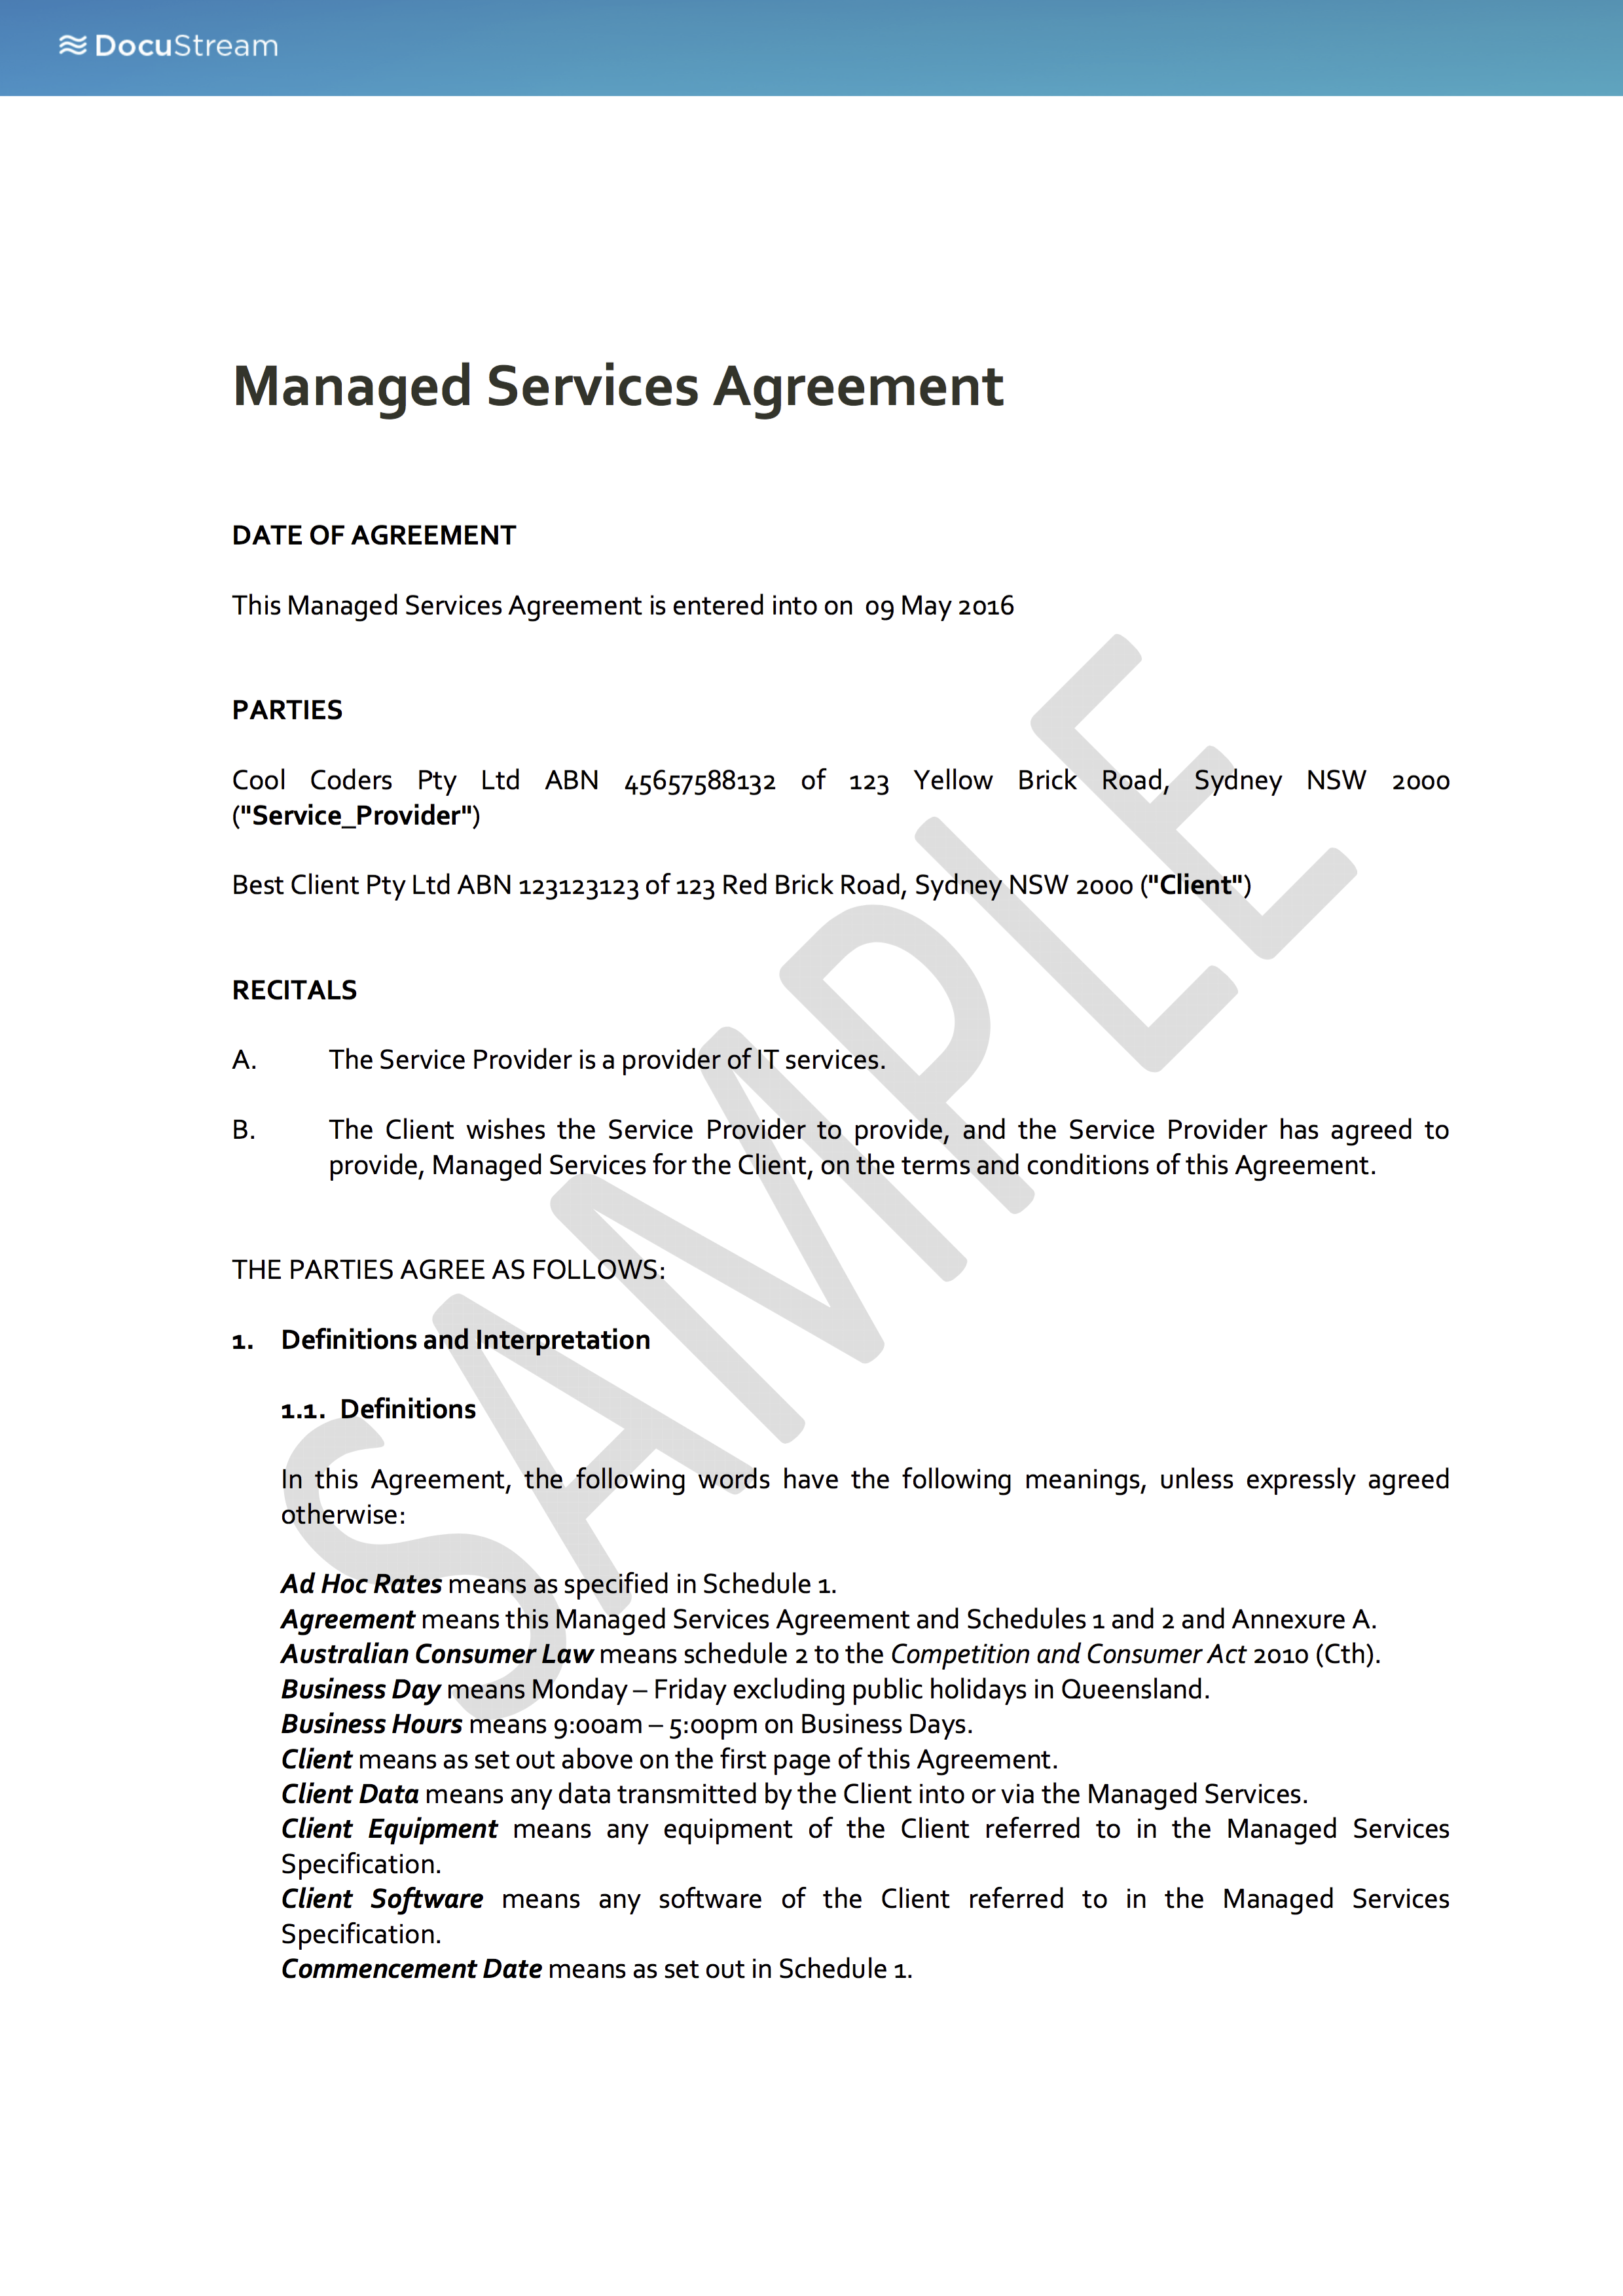 Managed Services Agreement – Words of Agreement